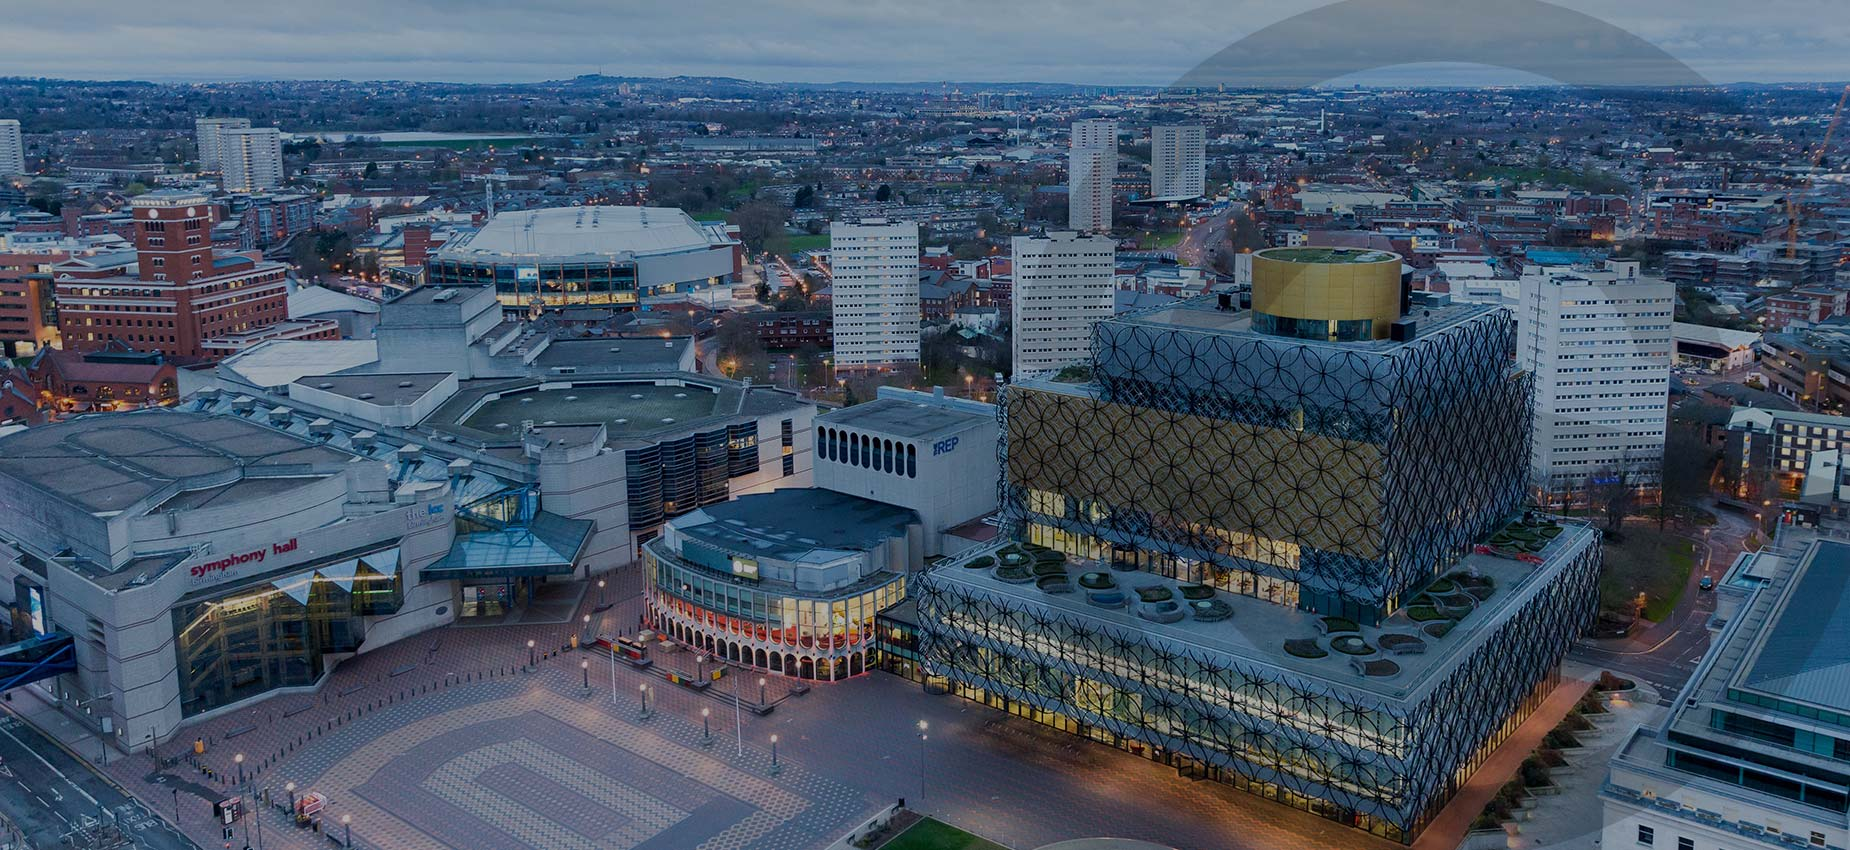 Birmingham outperforming other major cities on both jobs and housing front